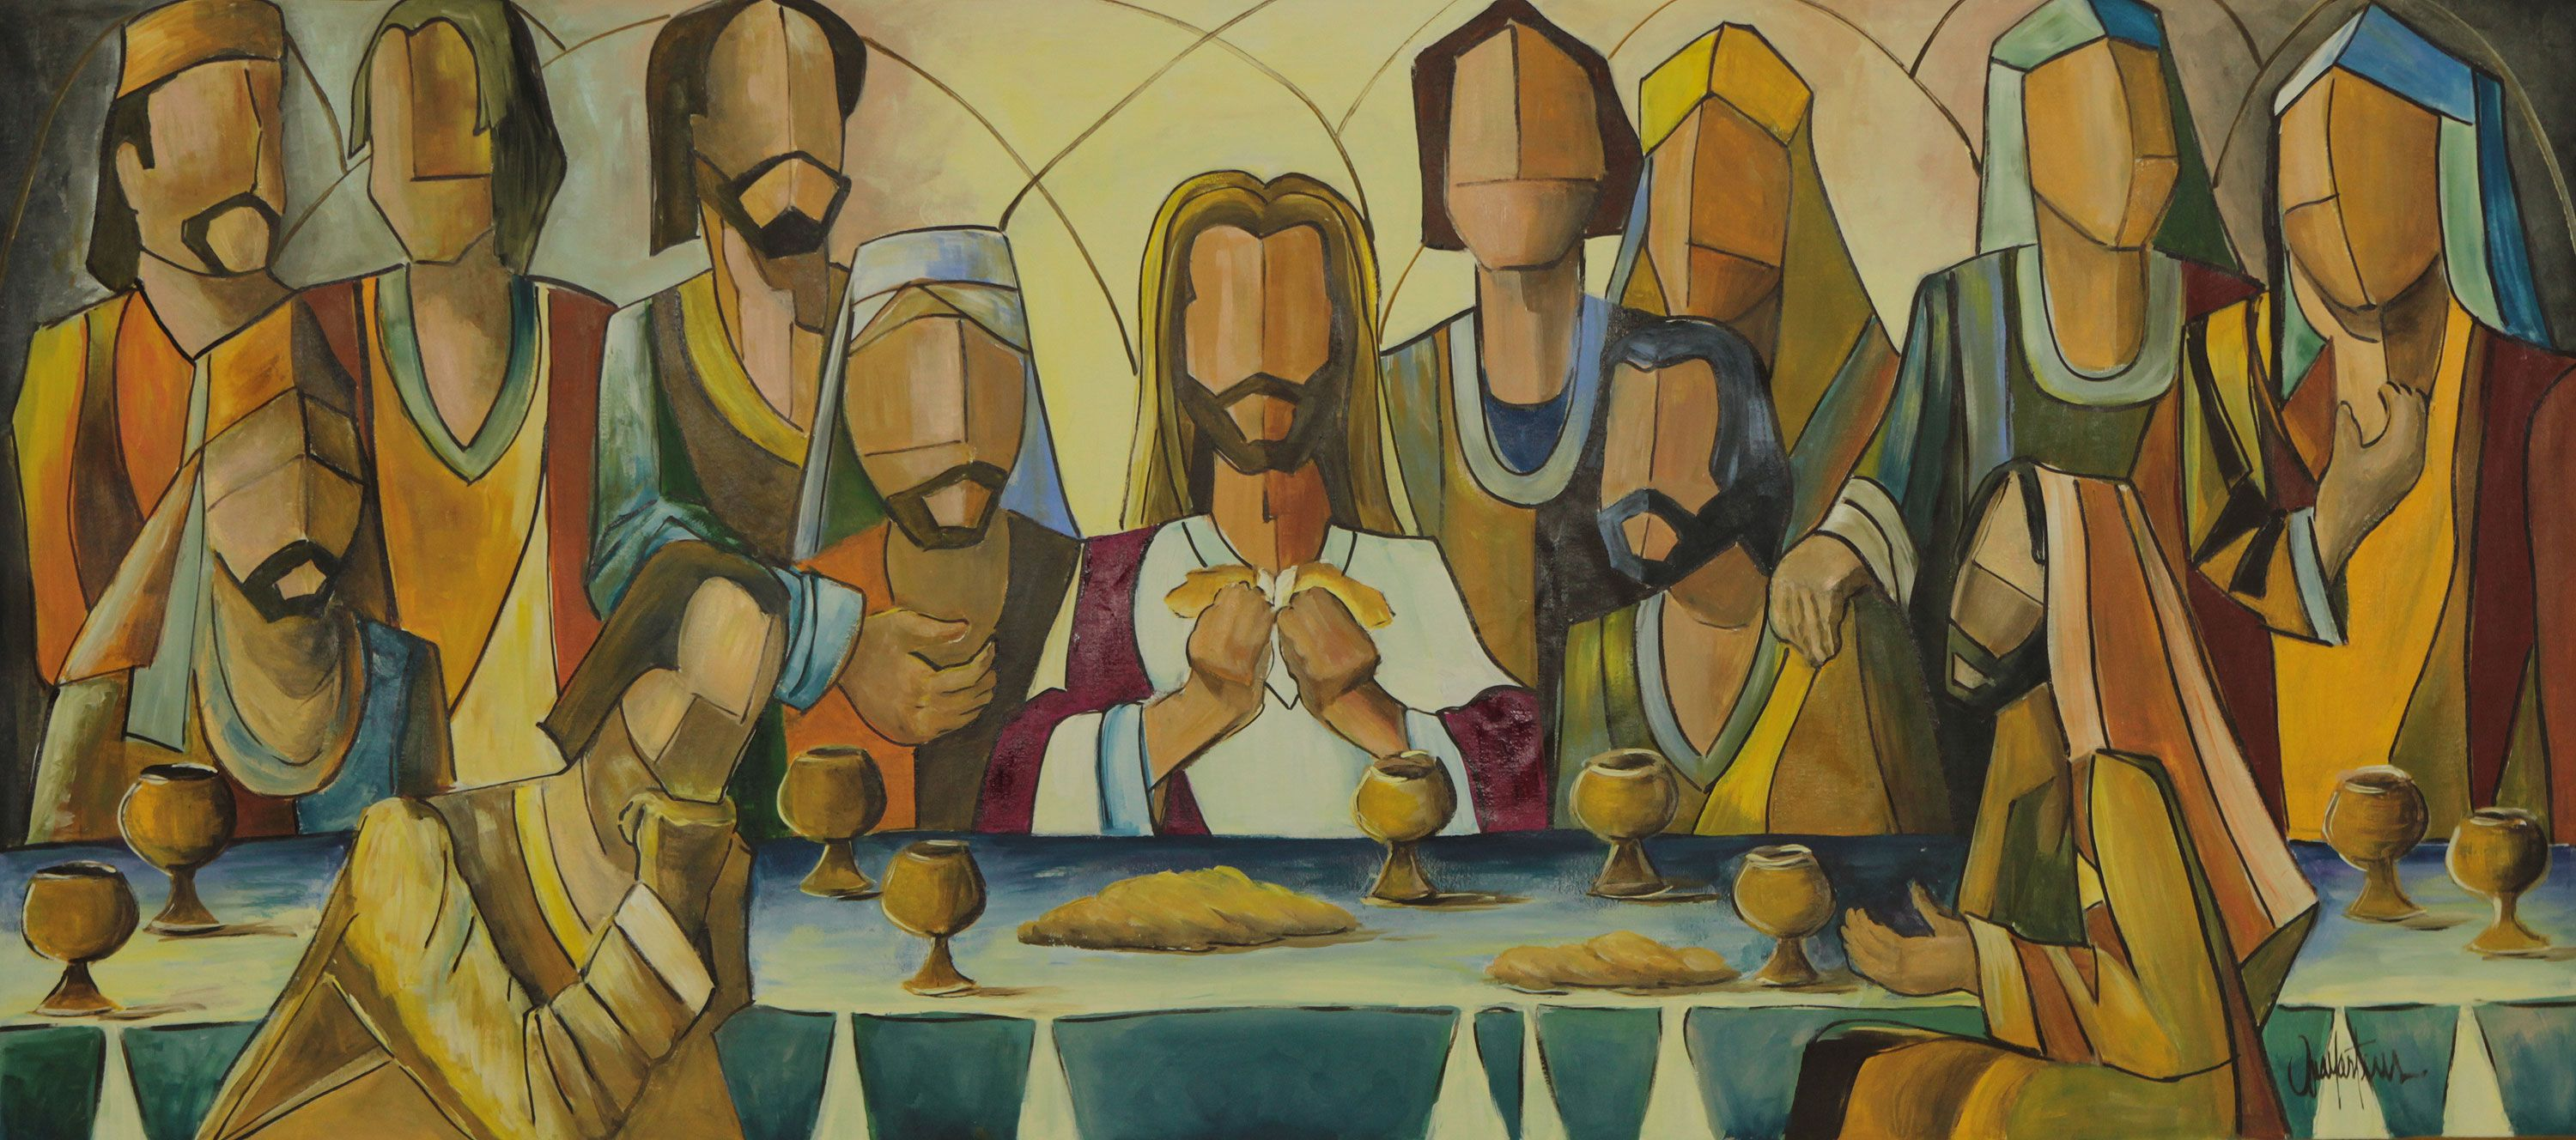 Modern Brazilian Painting of the Last Supper (2013), 'Christ and ...